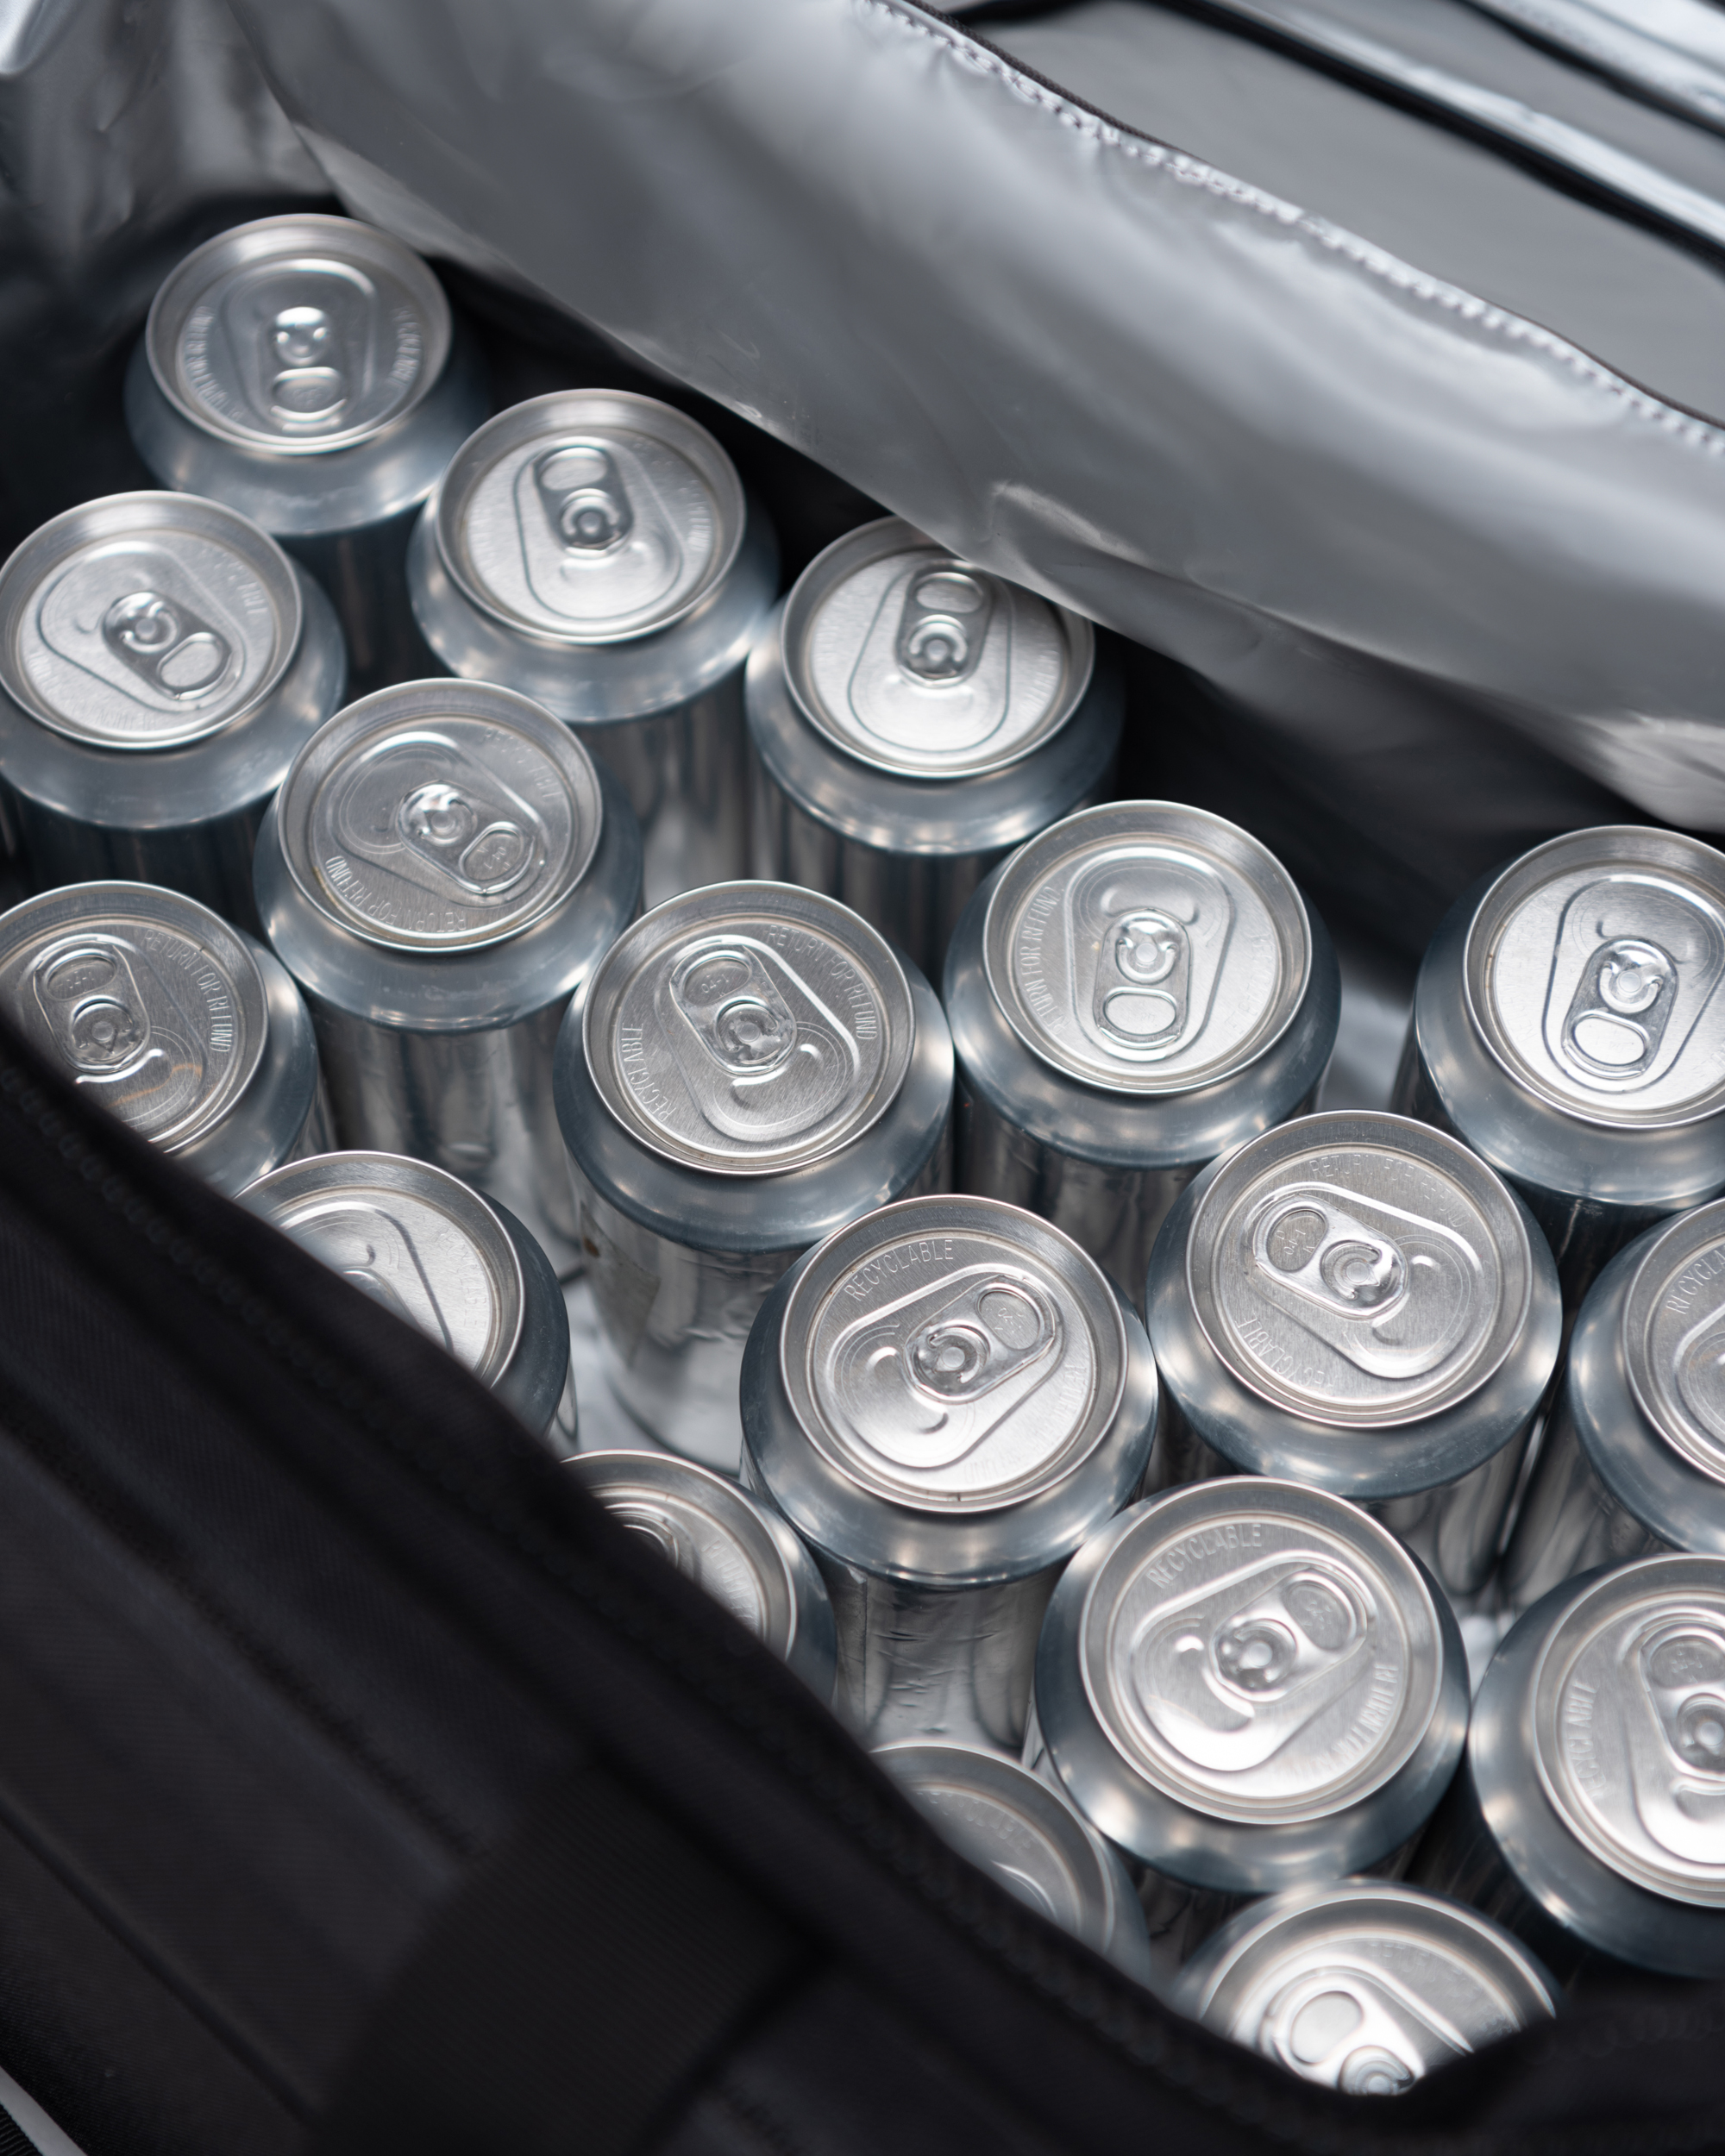 Fits 30 Cans